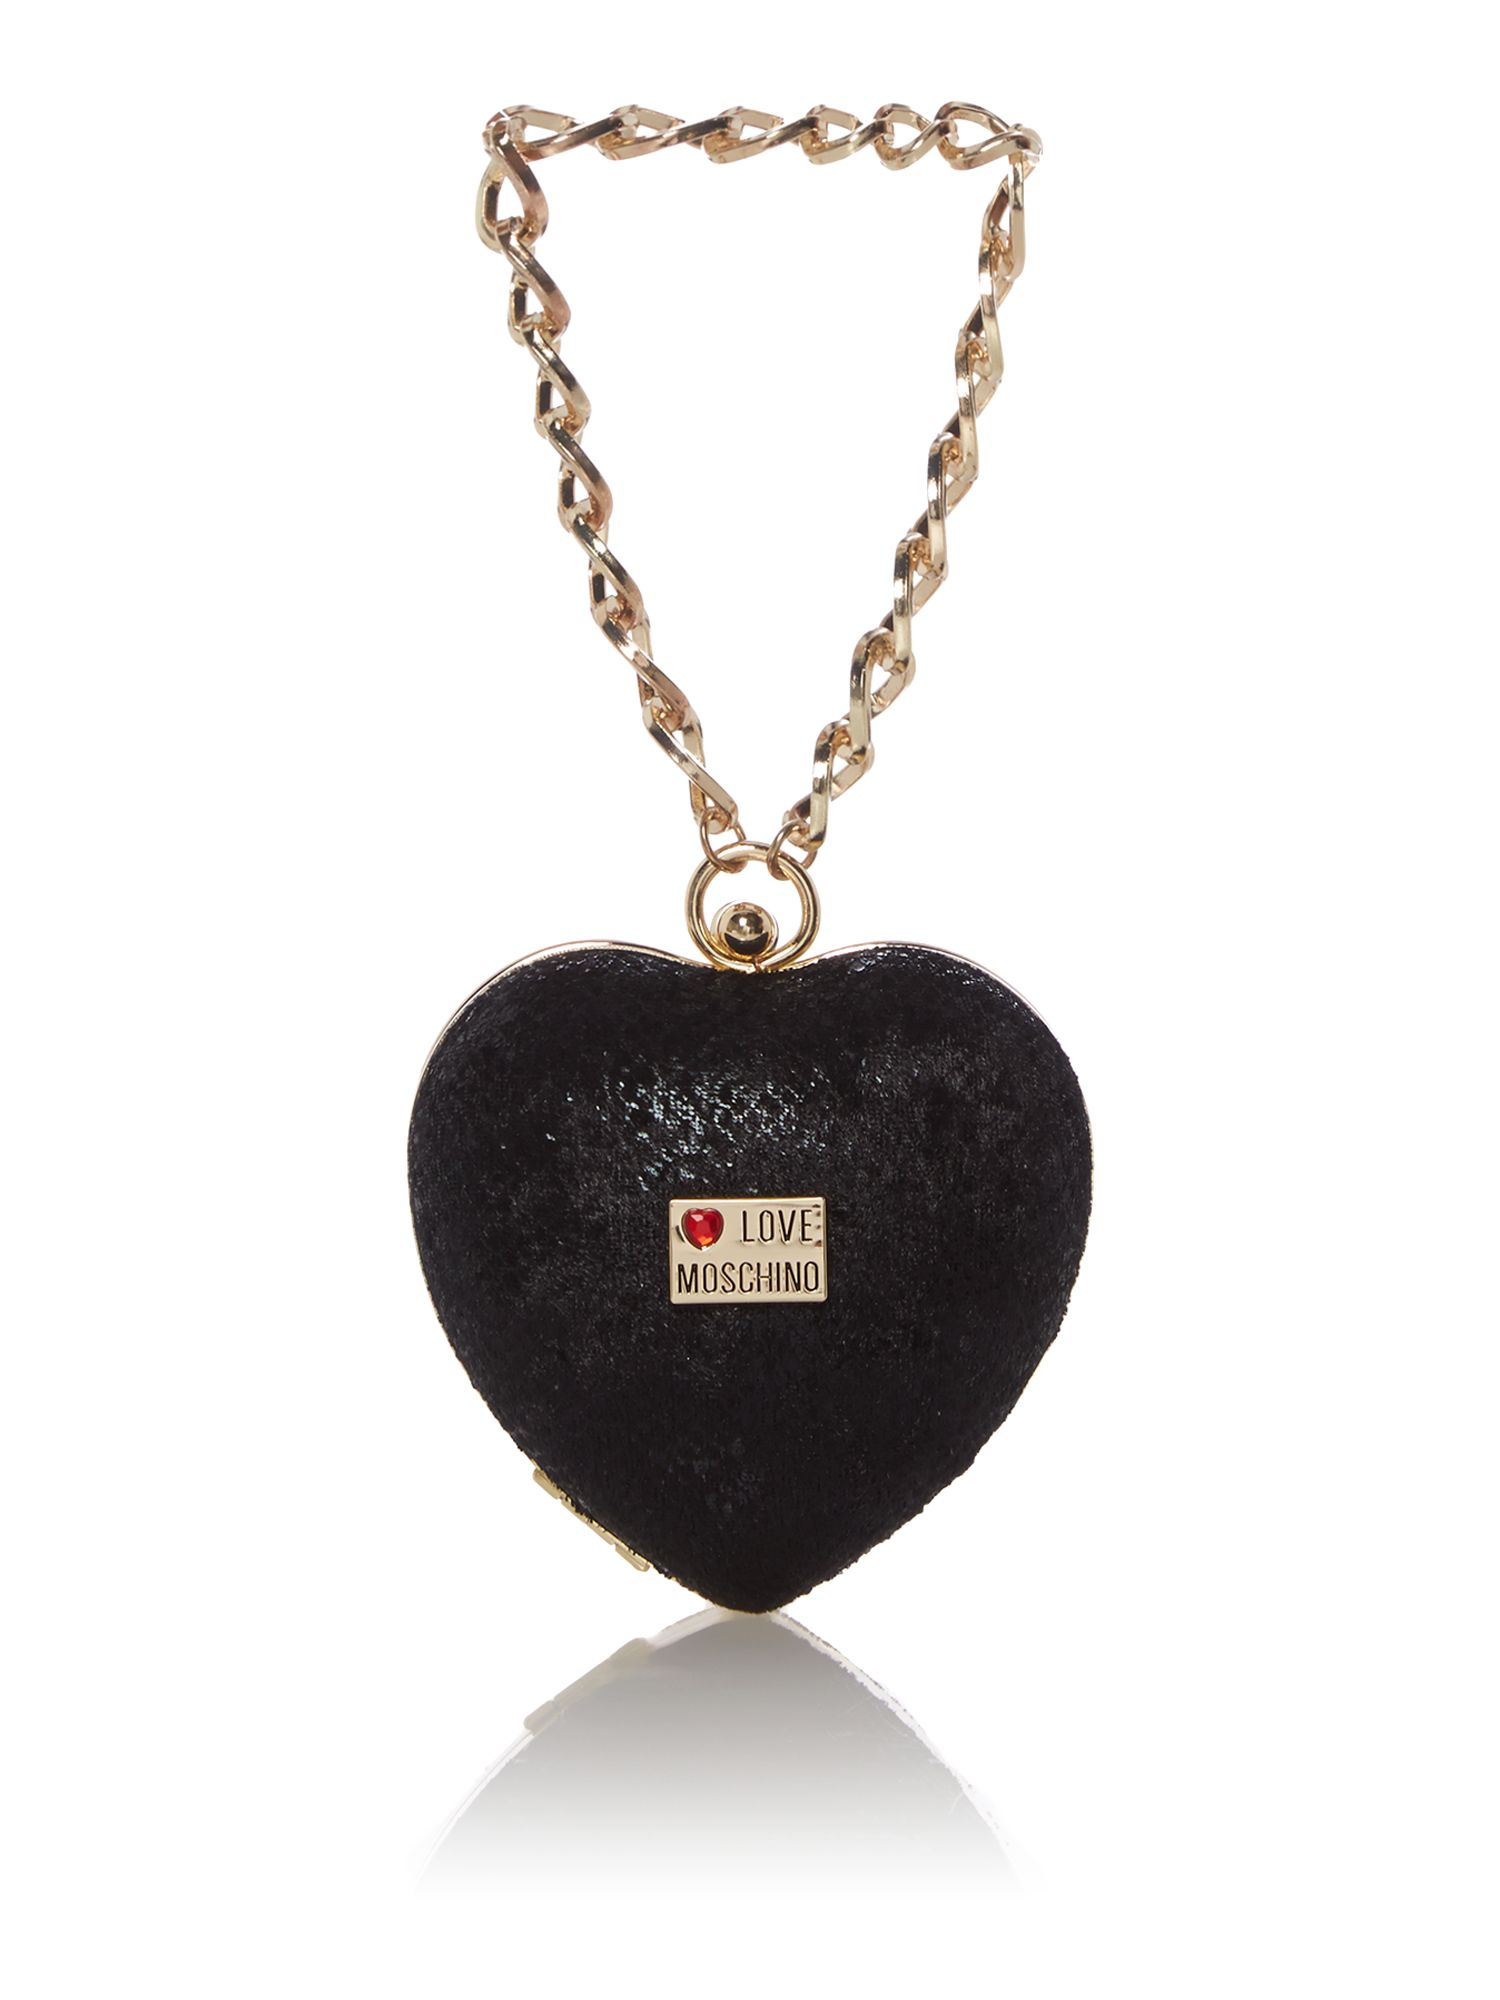 Black heart wristlet clutch bag